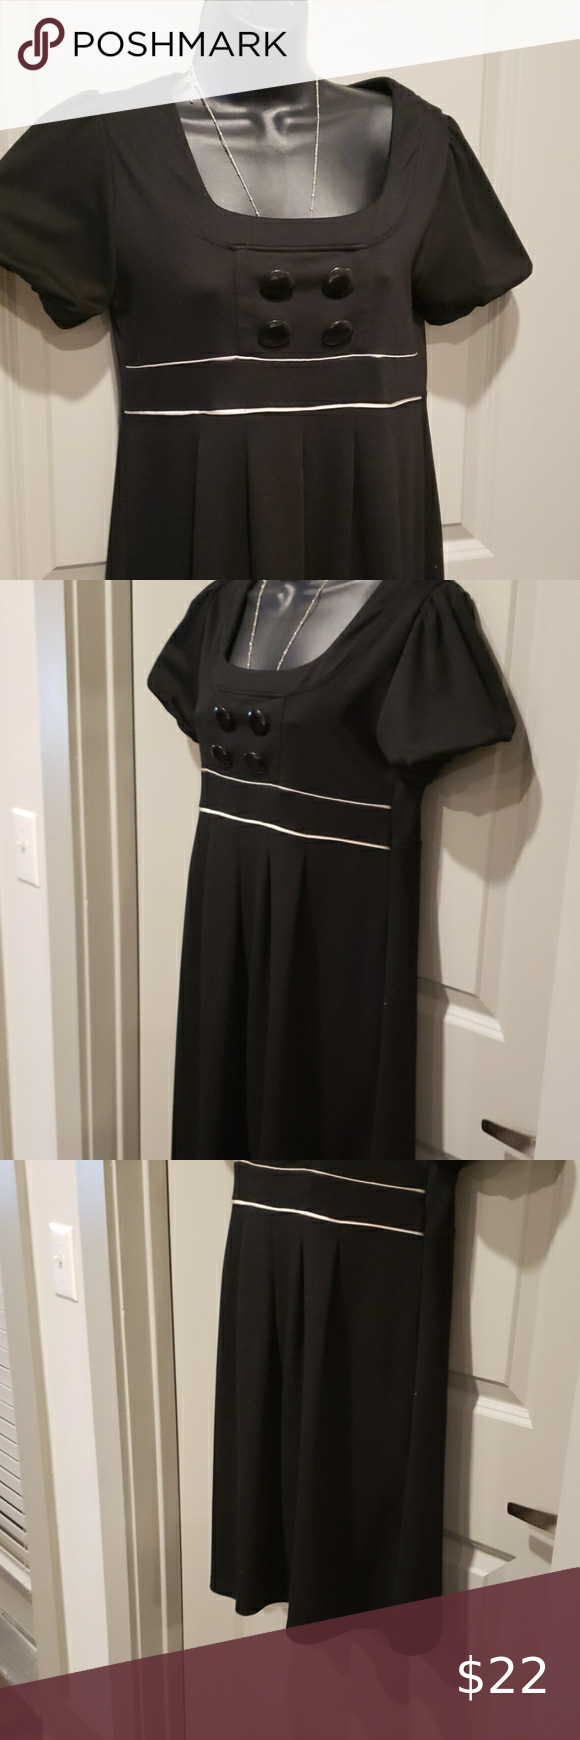 Black Dress 4 Big Front Buttons White Trim Under Bustline Puffy Short Sleeves 33 Top To Bottom Says L But Fits M Also L A B Black Dress Clothes Design Dresses [ 1740 x 580 Pixel ]